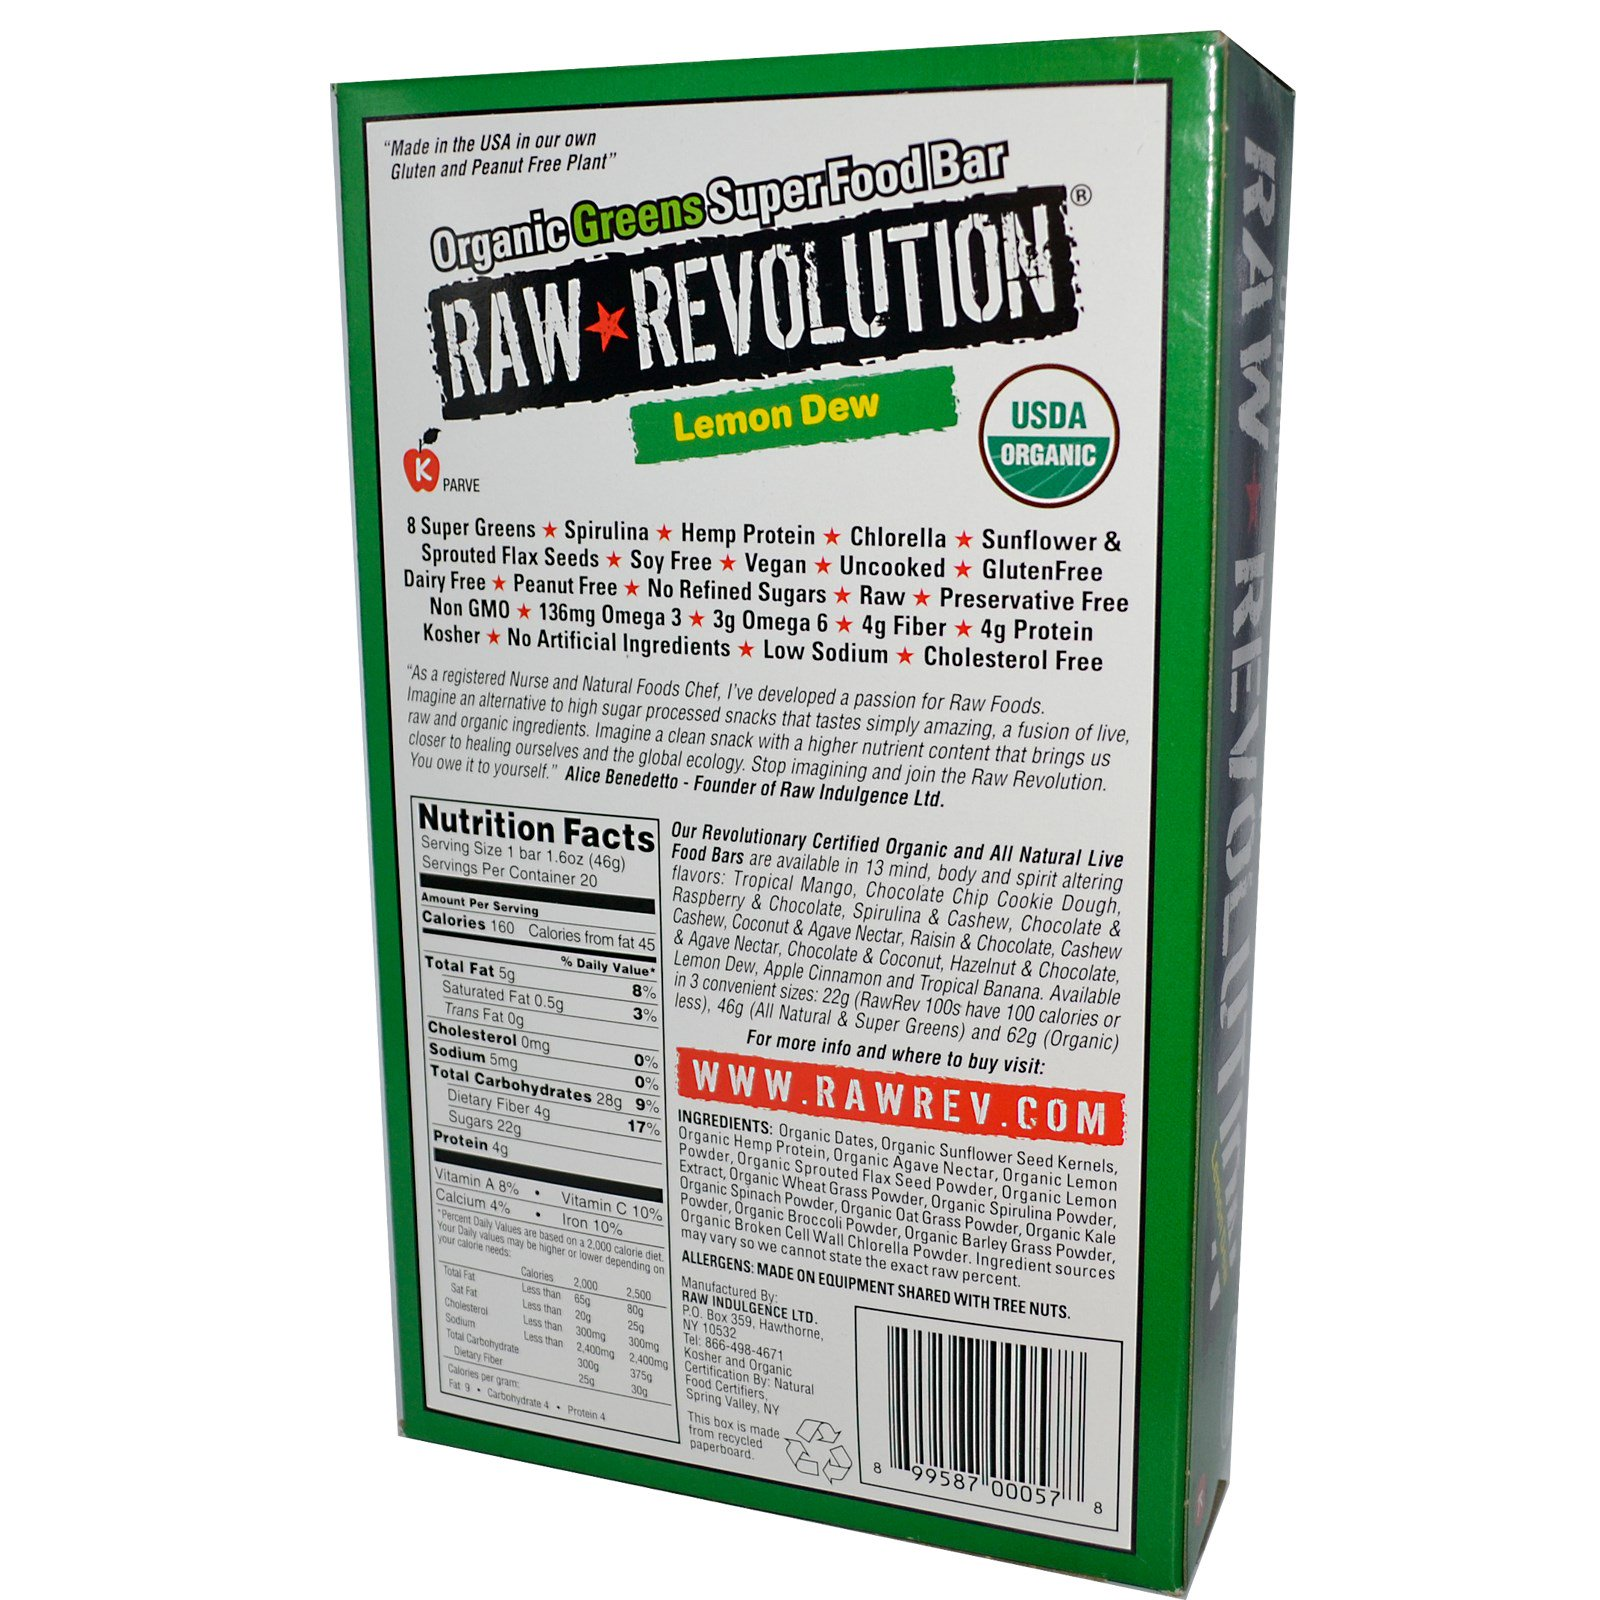 Raw revolution organic greens super food bar lemon dew for Raw food bars uk